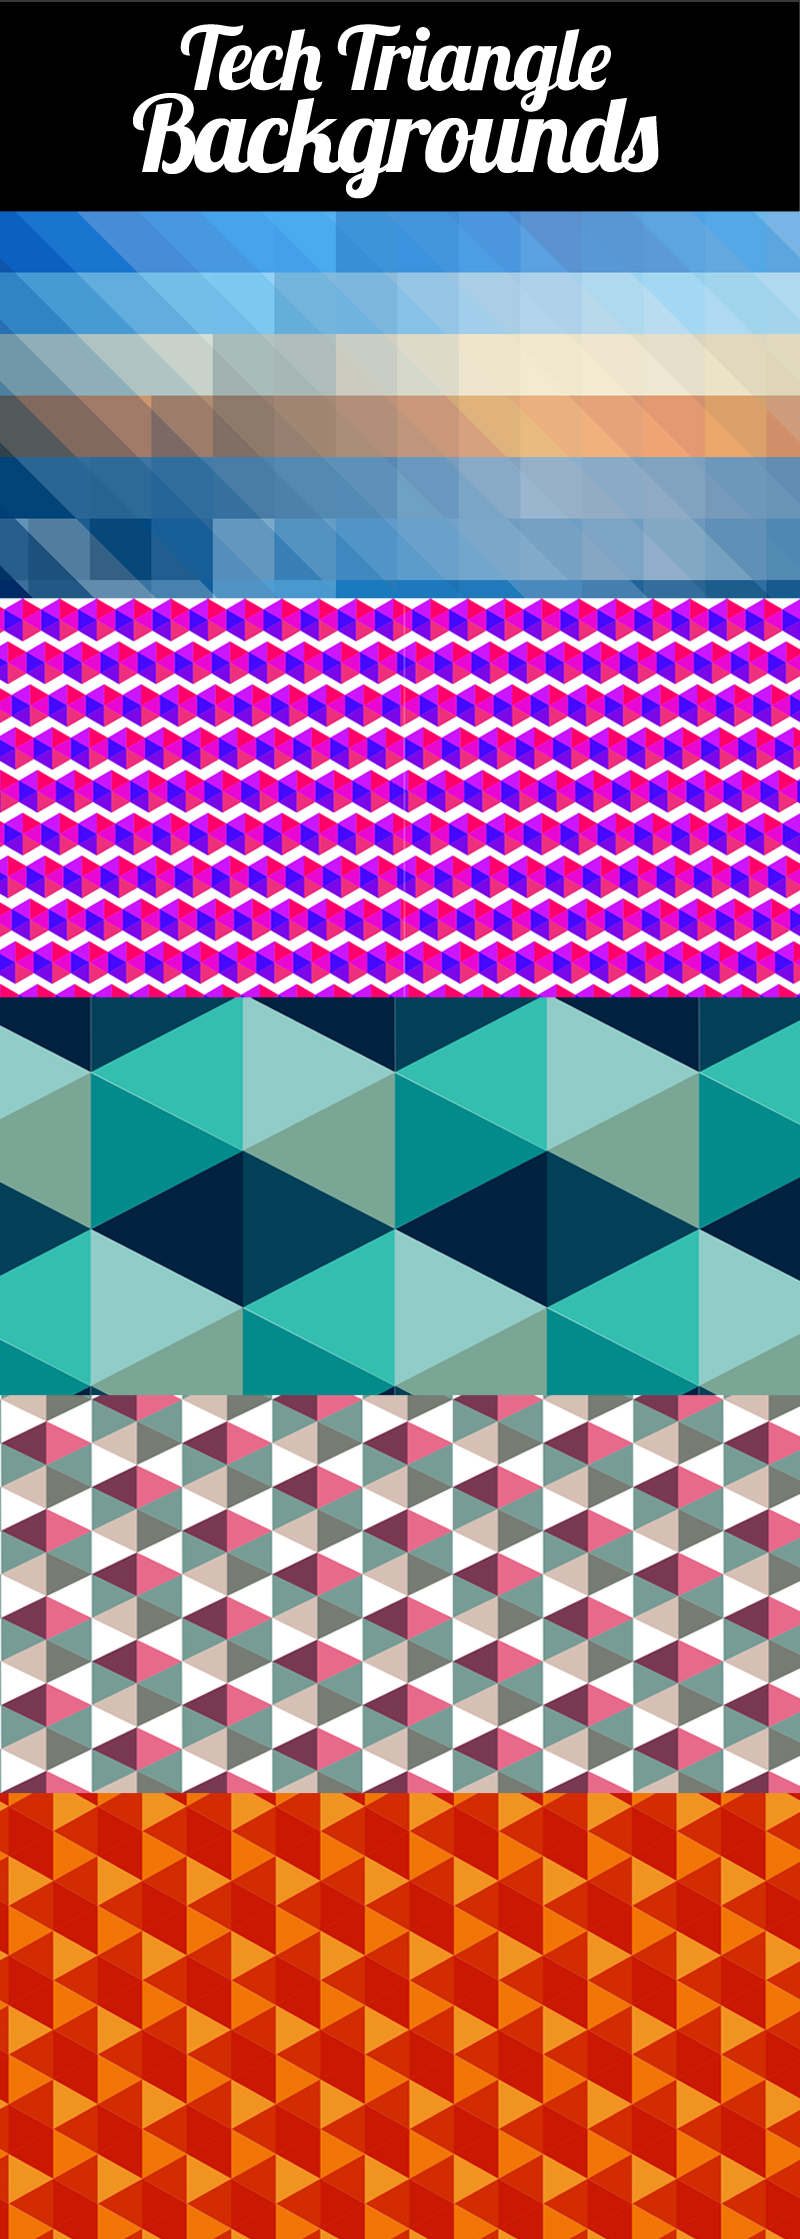 Tech Triangles Backgrounds